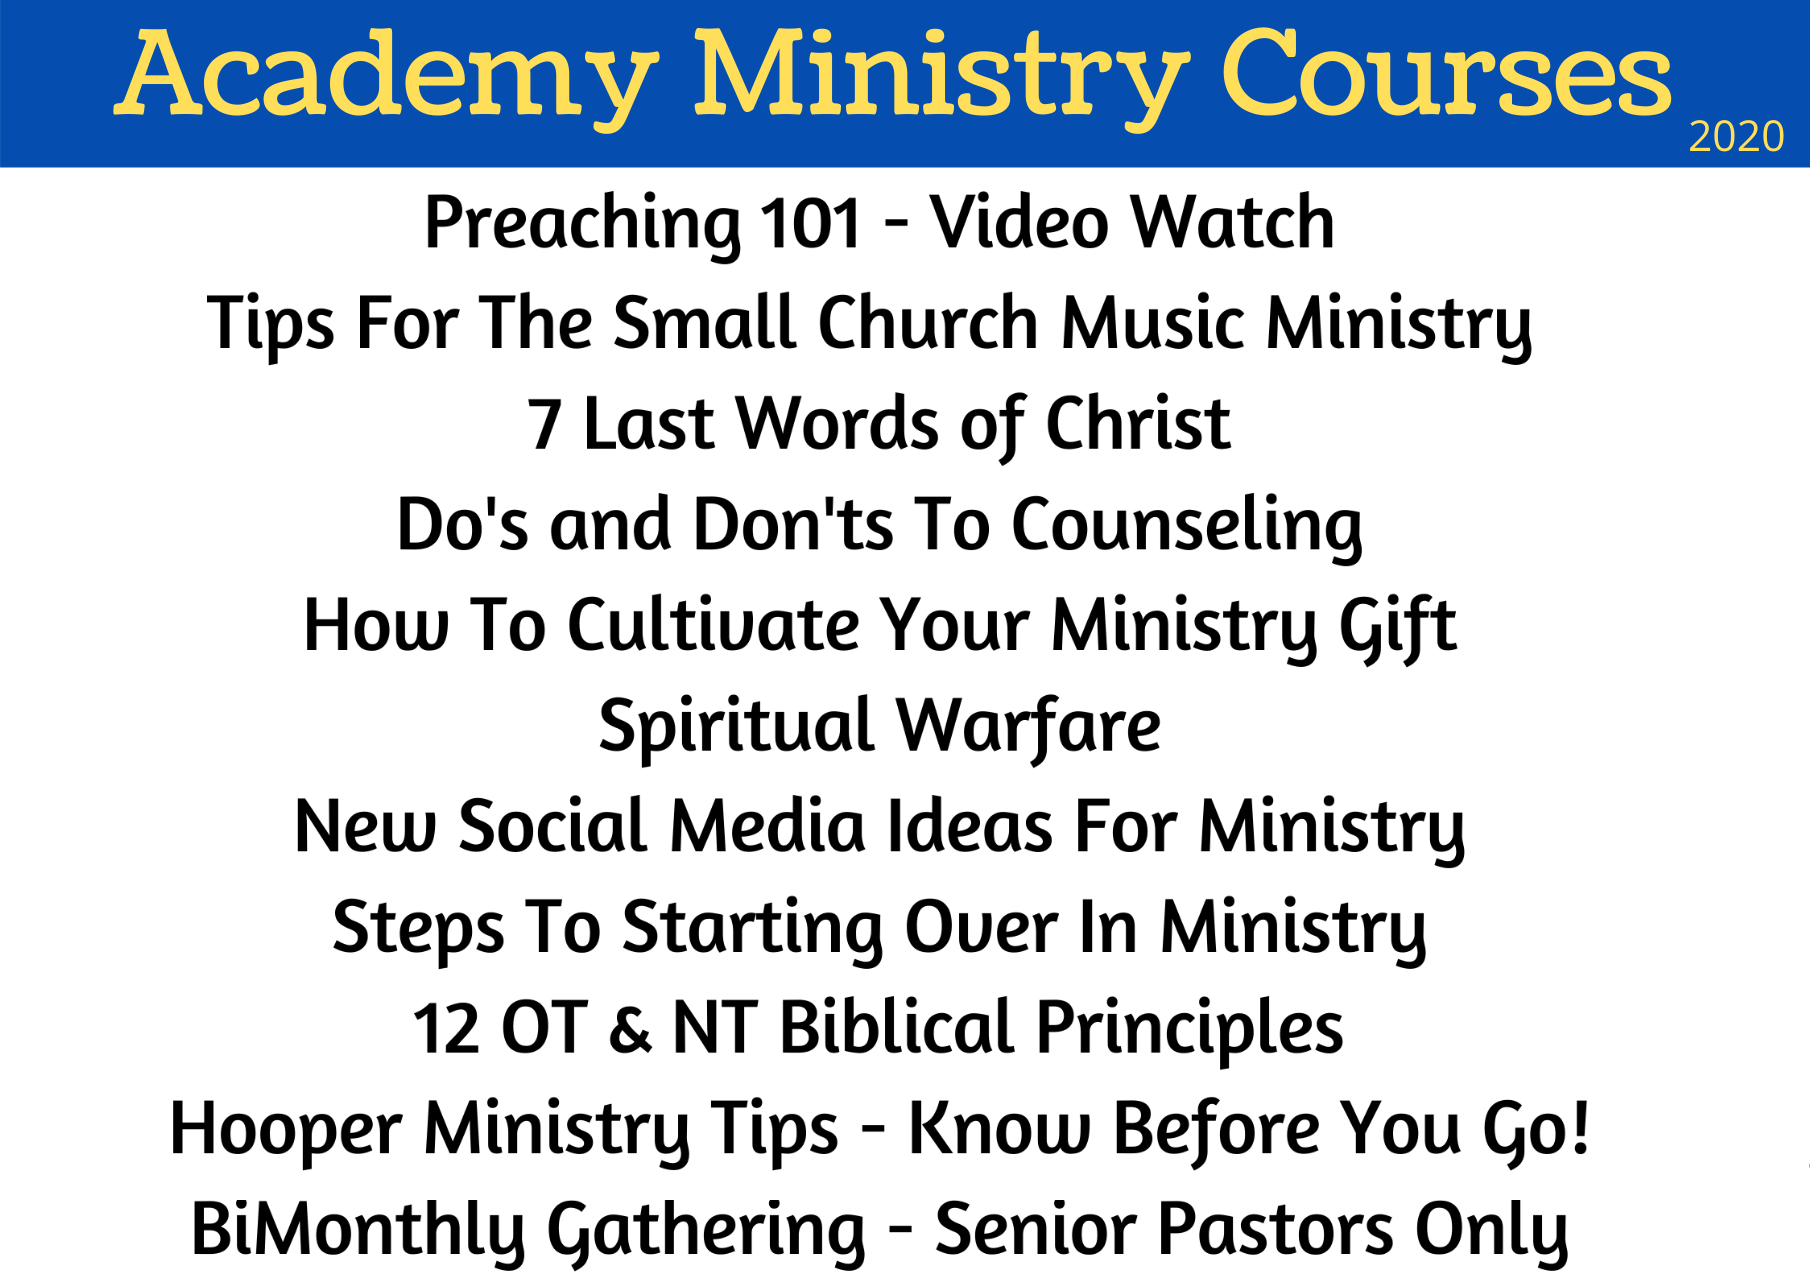 Ministry Academy Courses 2020